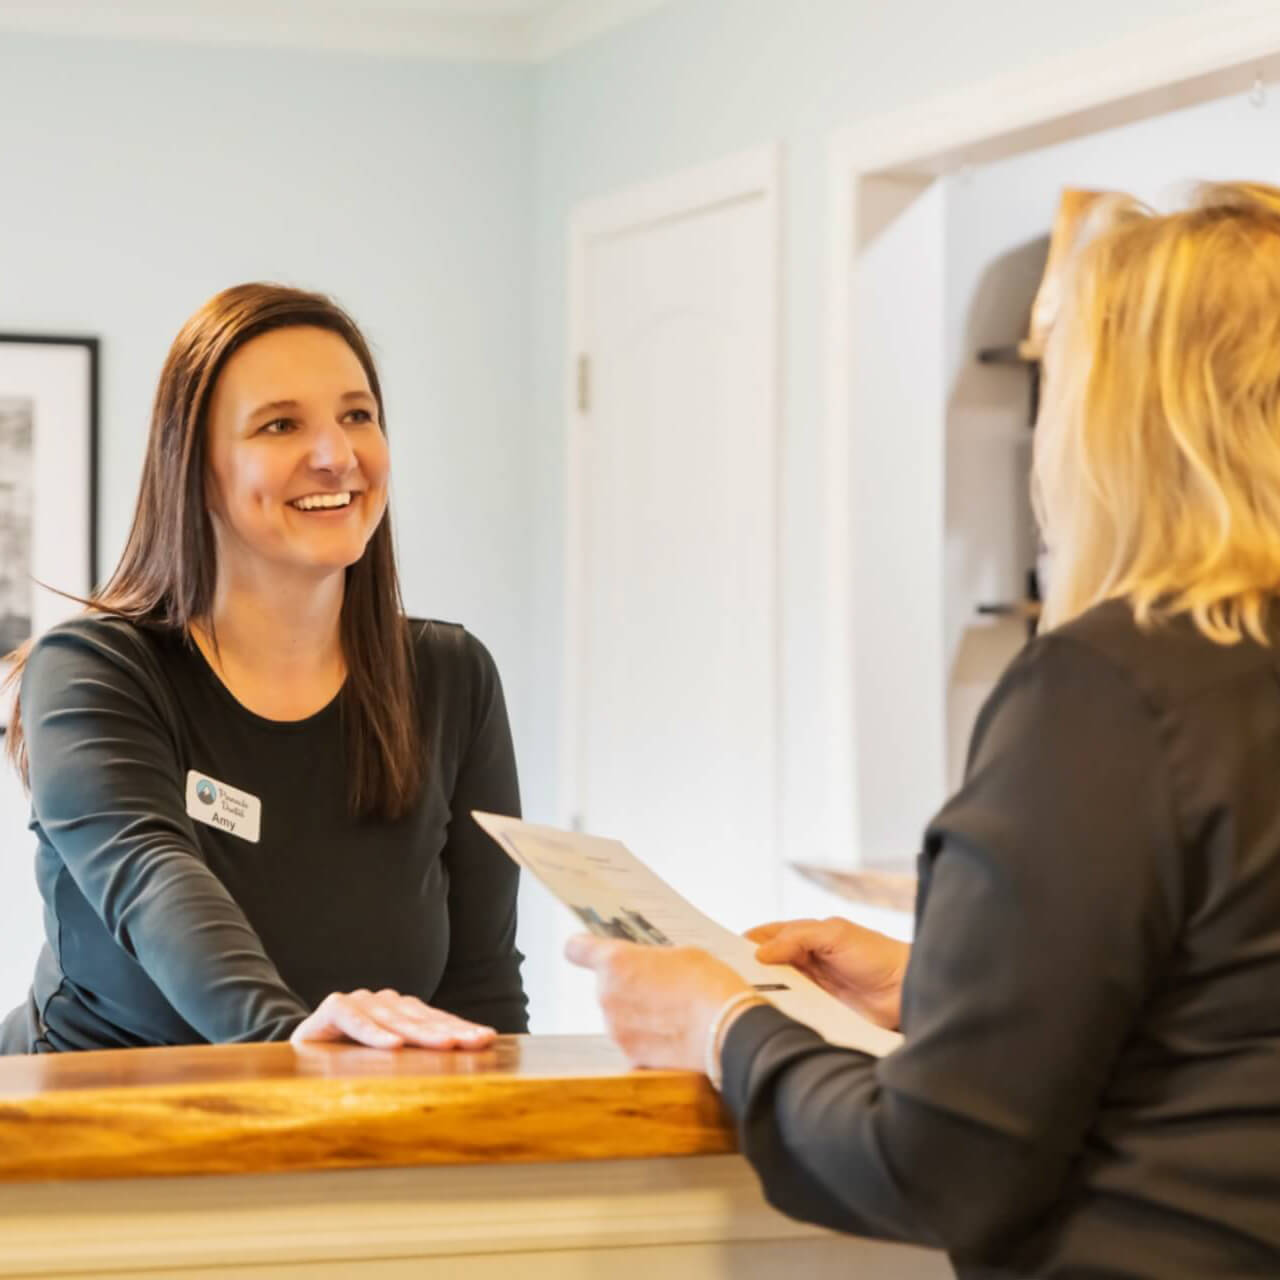 A satisfied patient speaks to reception after treatment with Dr Kottman